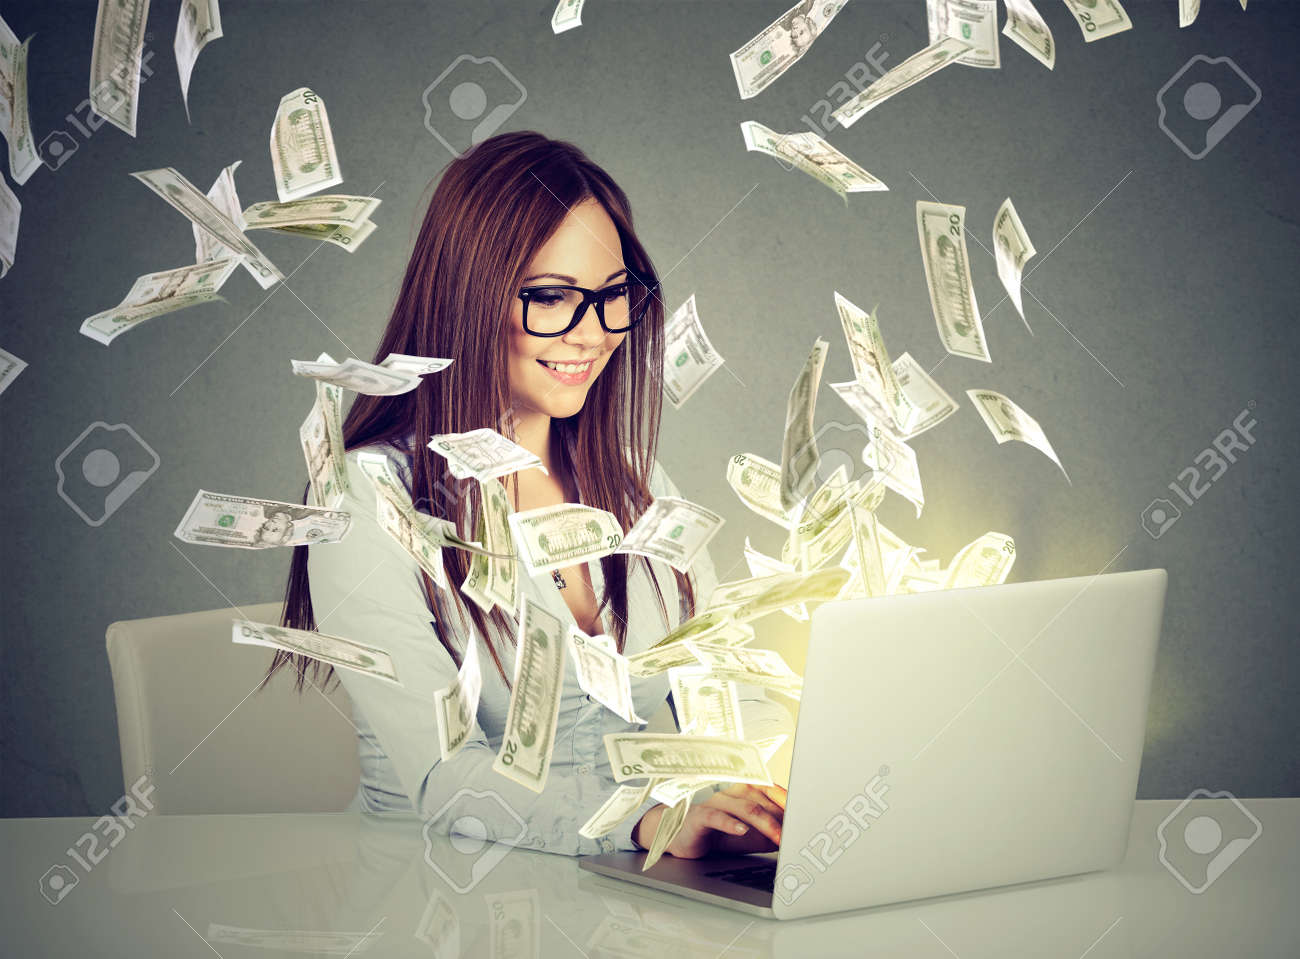 Professional smart young woman using a laptop building online business making money dollar bills cash coming out of computer. Beginner IT entrepreneur success economy concept - 74961839